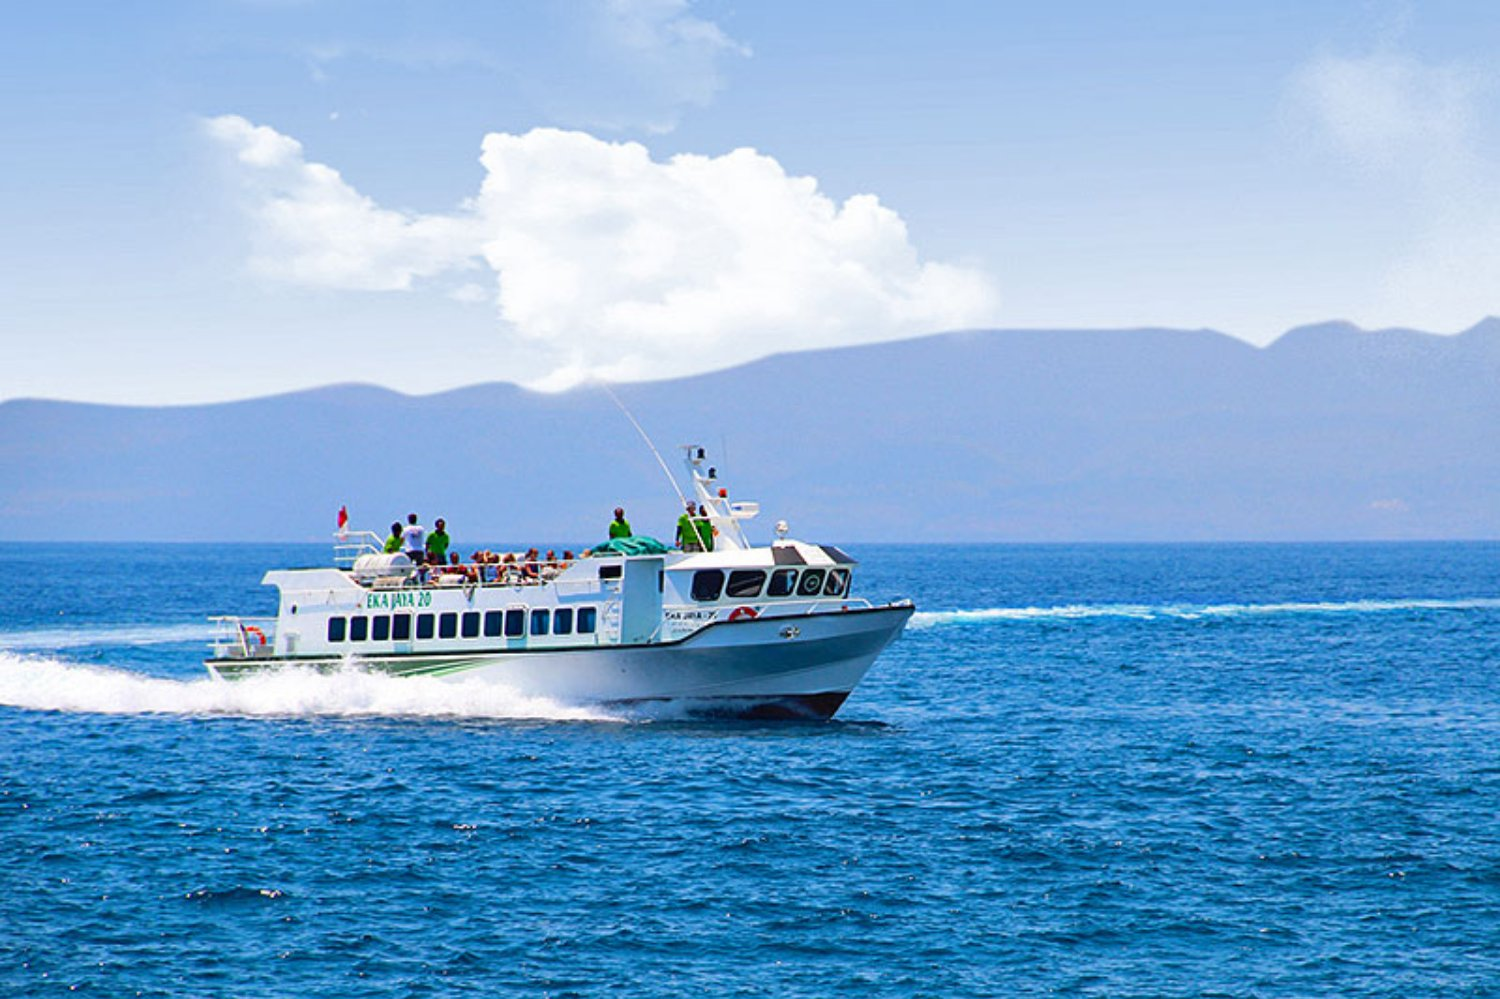 How Much Is The Ferry From Sanur To Nusa Penida?